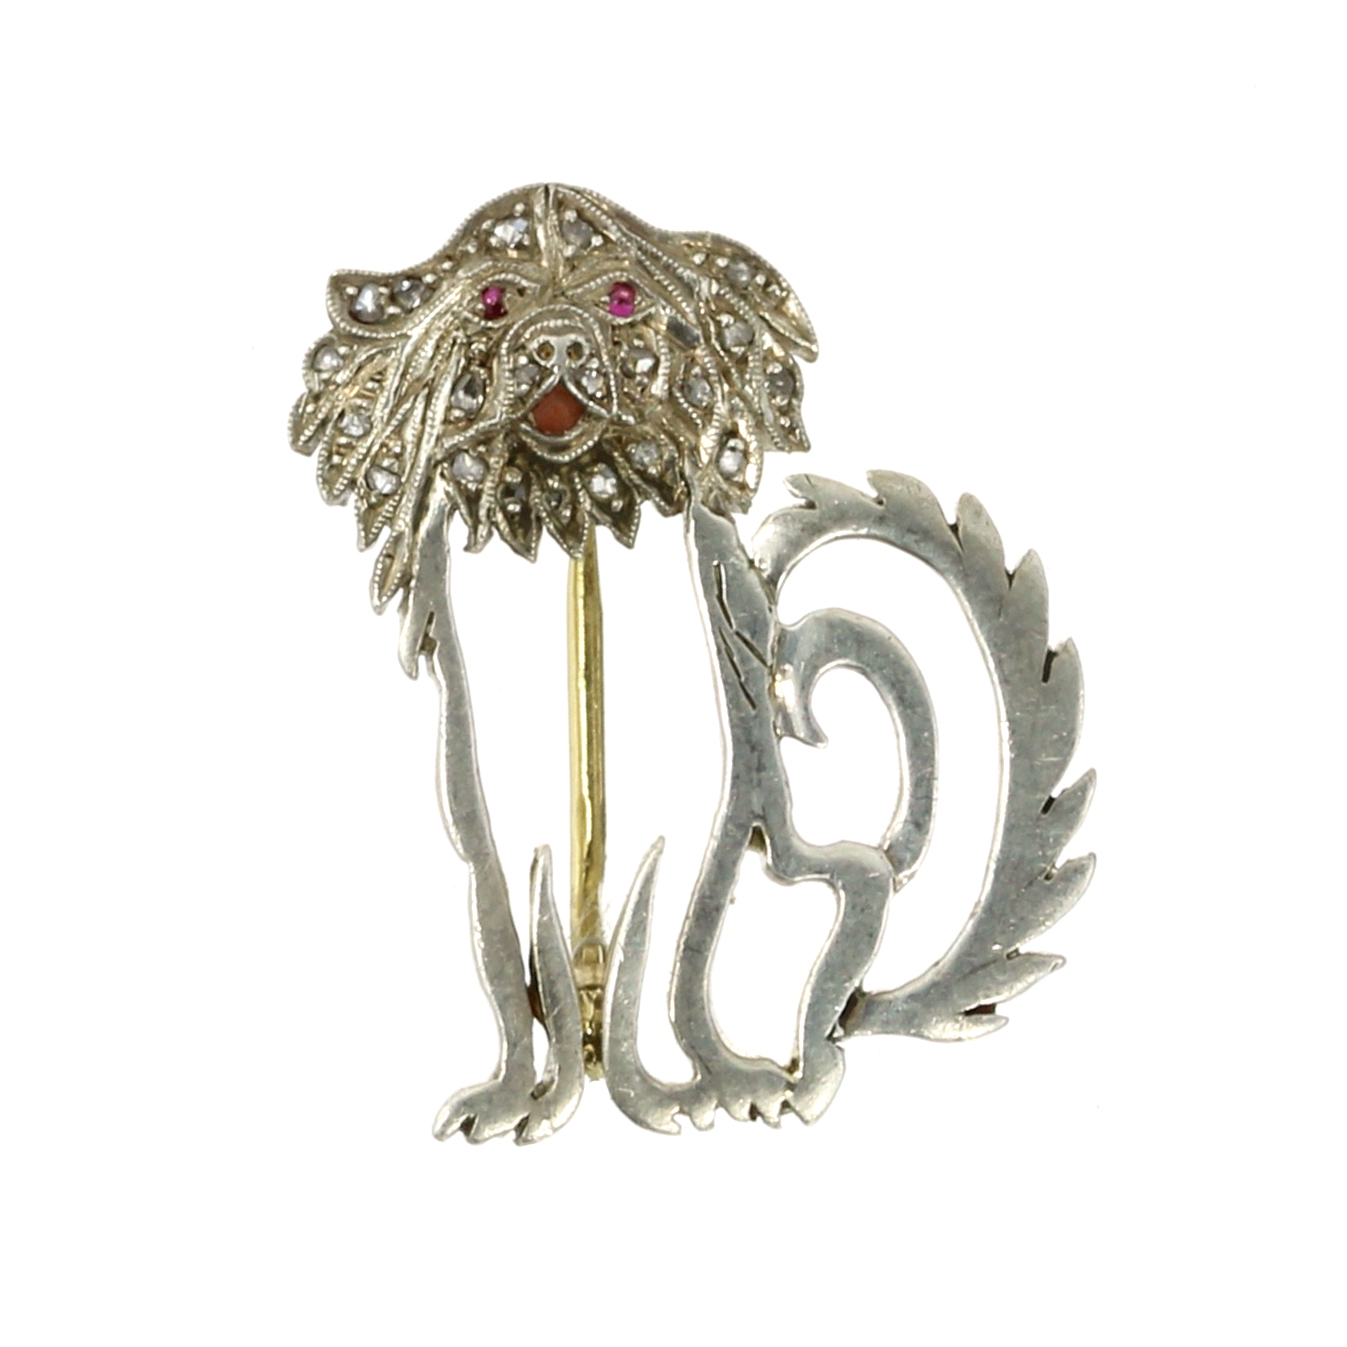 Los 56 - A RUBY AND DIAMOND DOG BROOCH modeled as a seated dog, its body outlined and its face jewelled